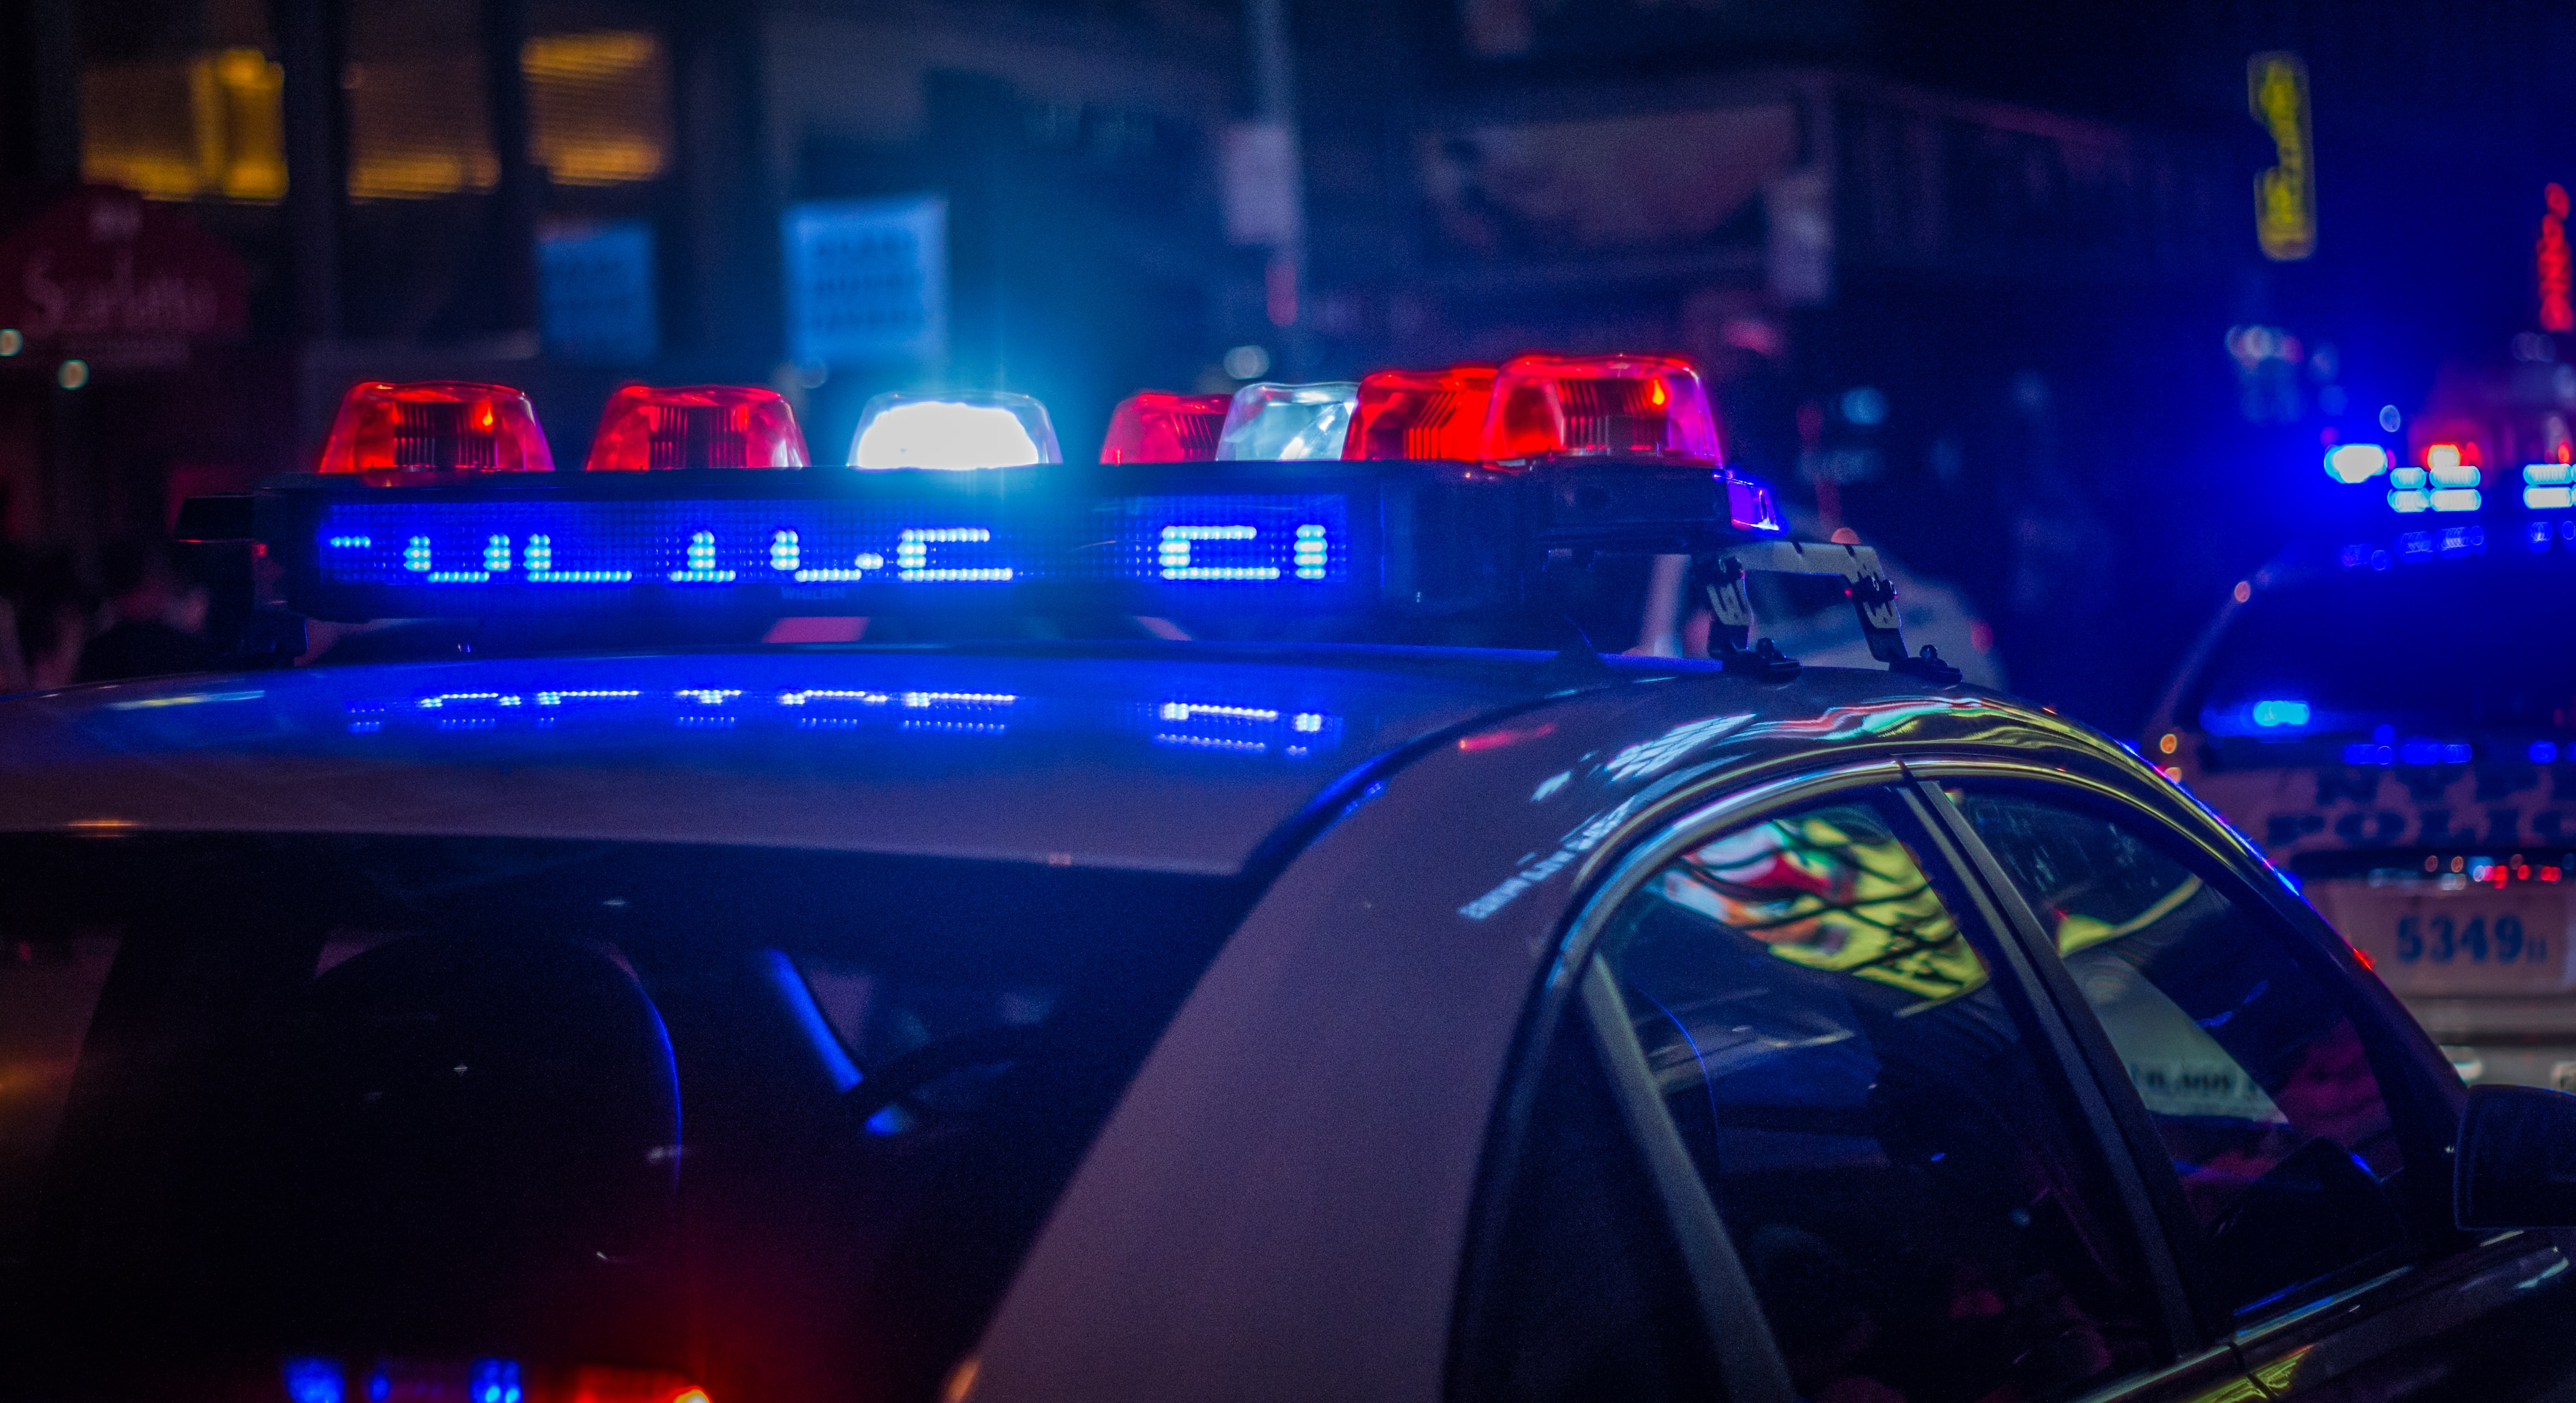 The red and blue flashing lights from a police cruiser in the darkness.